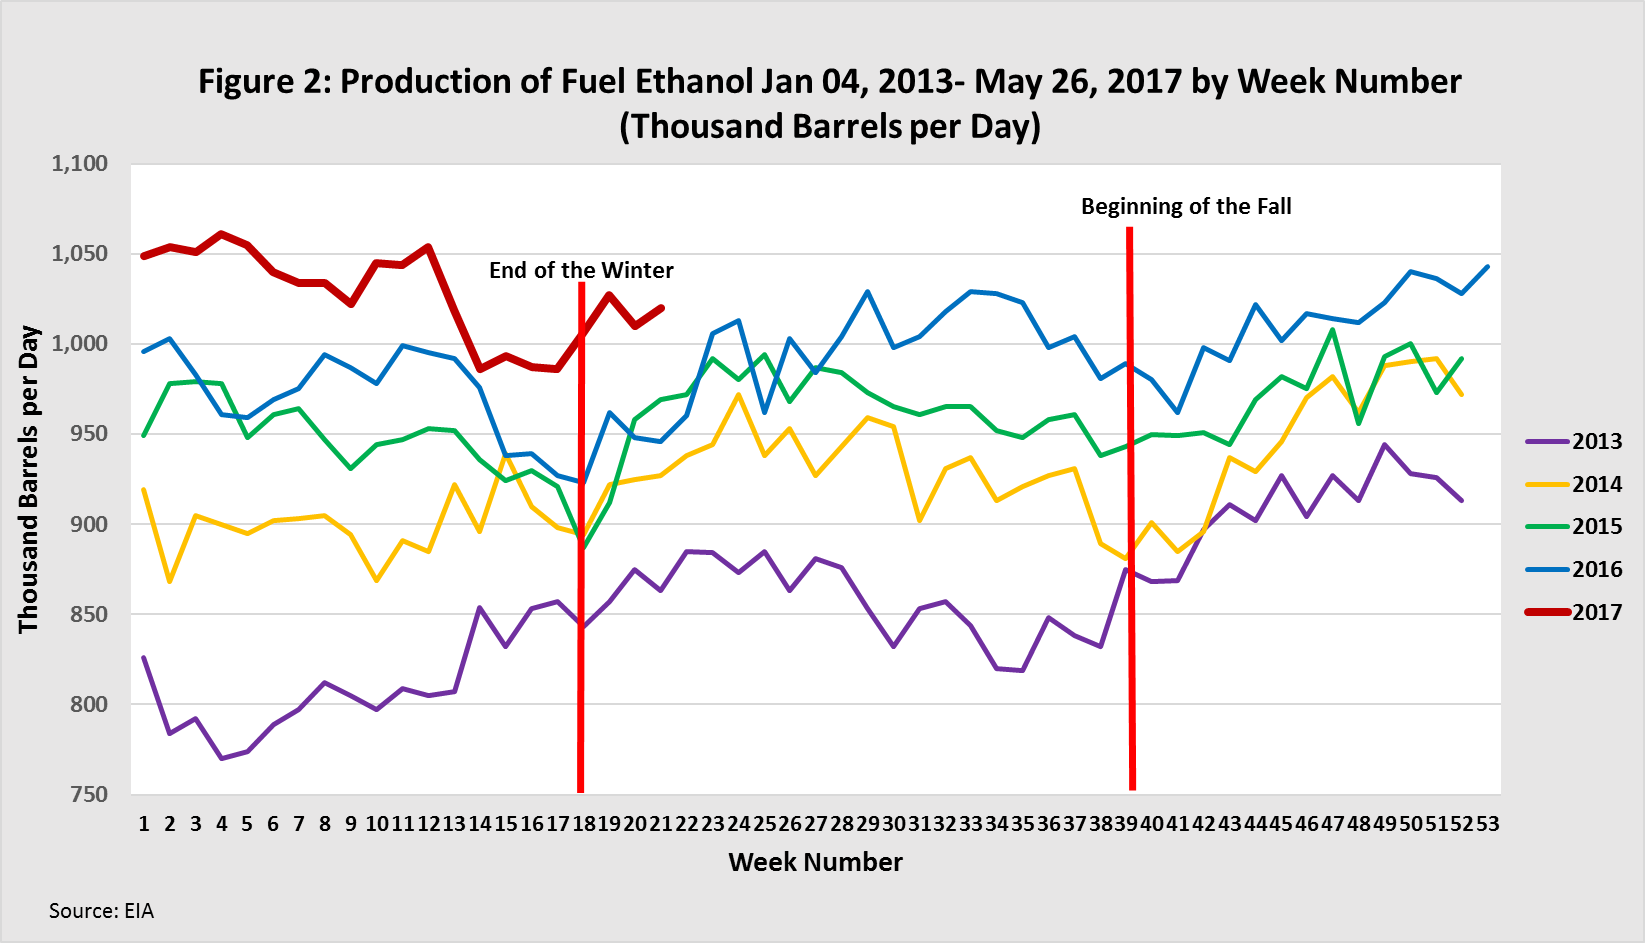 Literature review on ethanol production